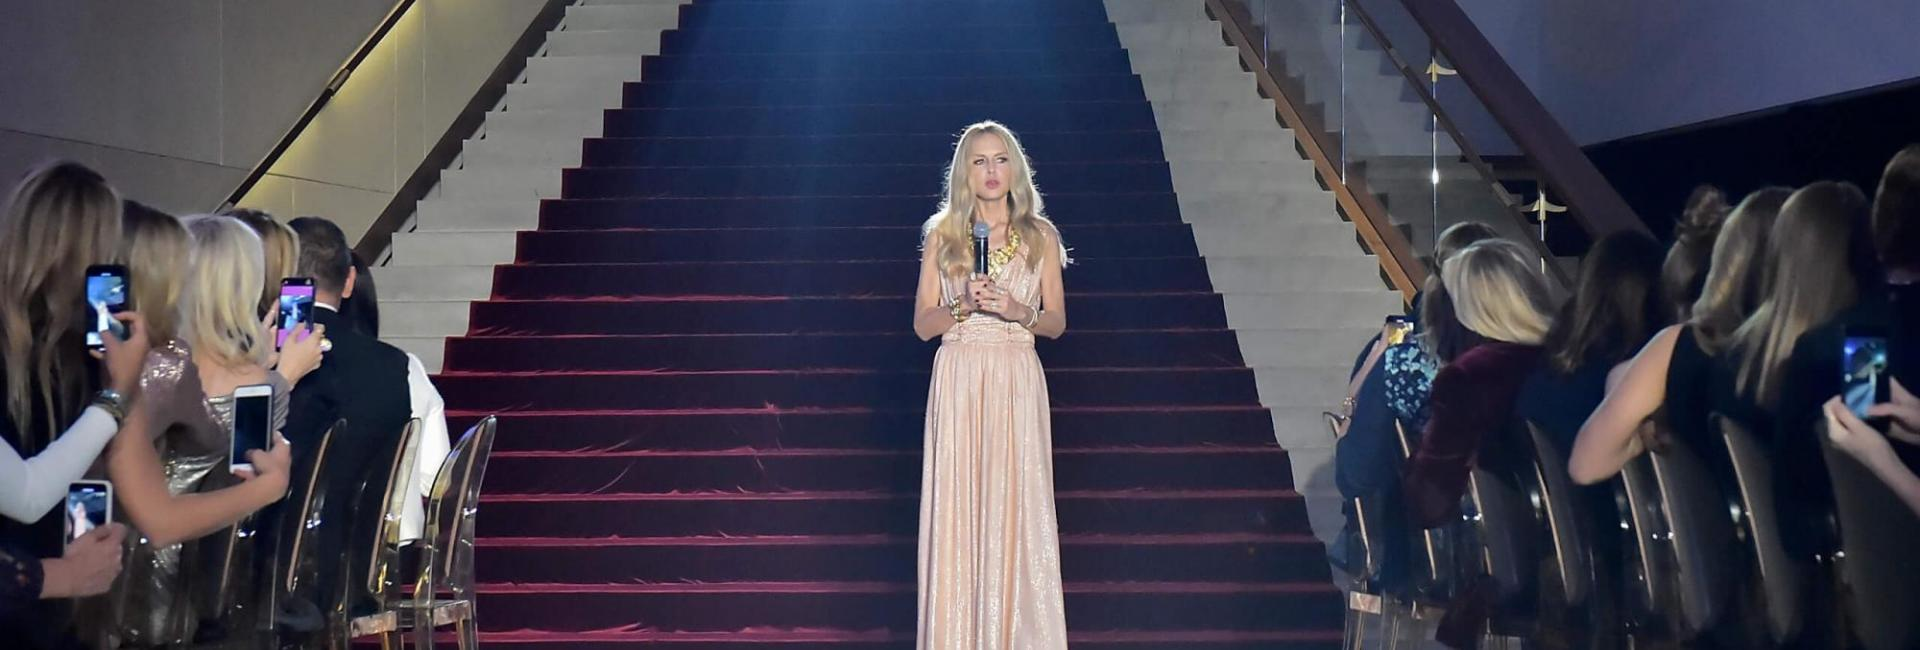 A woman in a long pink gown standing in front of a large staircase